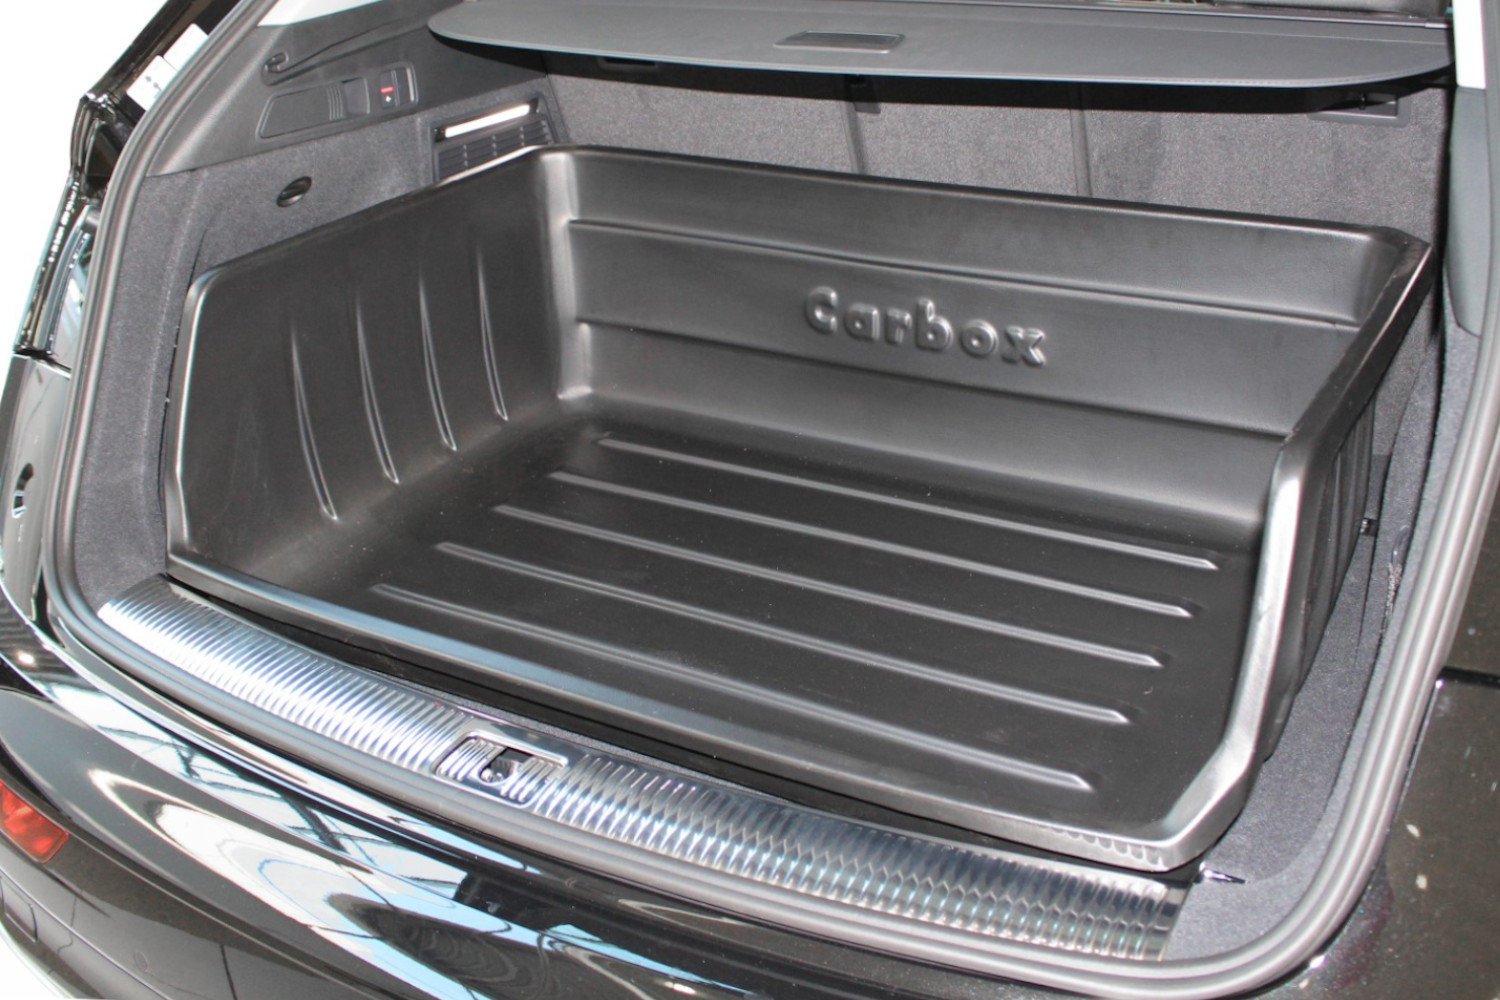 Boot liner Audi Q3 (8U) 2011-2018 Carbox Classic YourSize 99 high sided